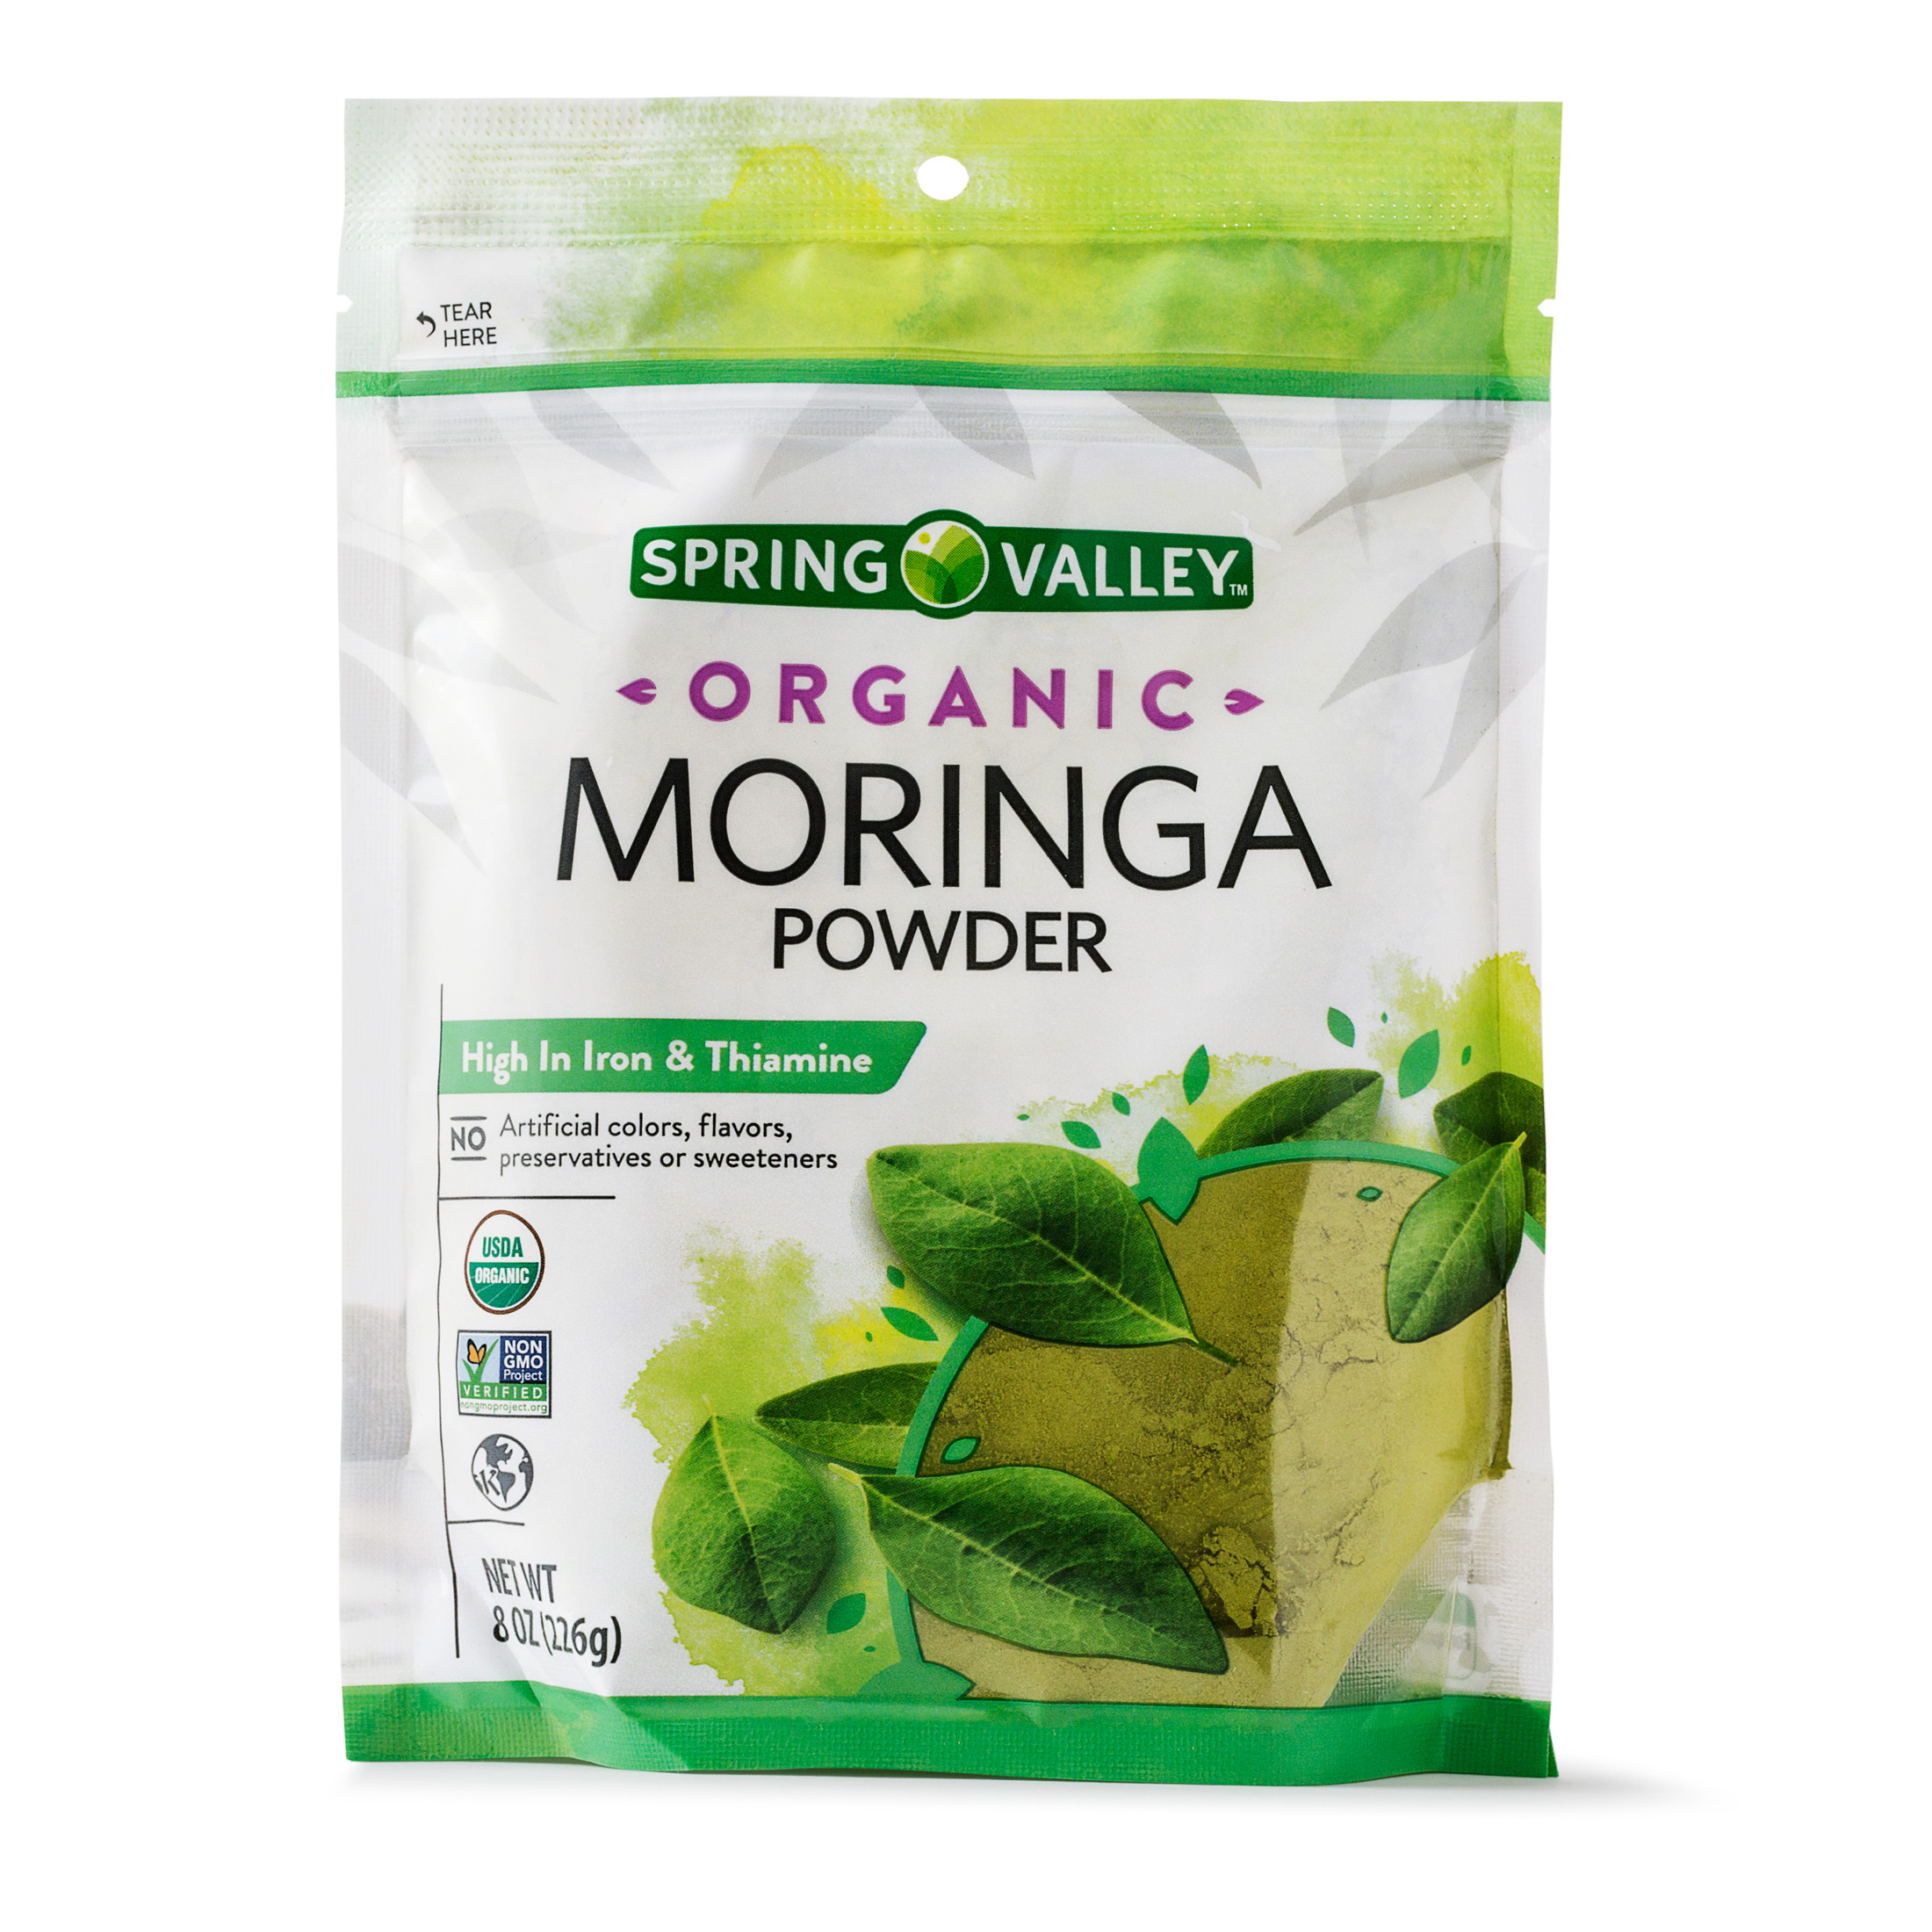 Spring Valley Organic Moringa Powder, 8 Oz